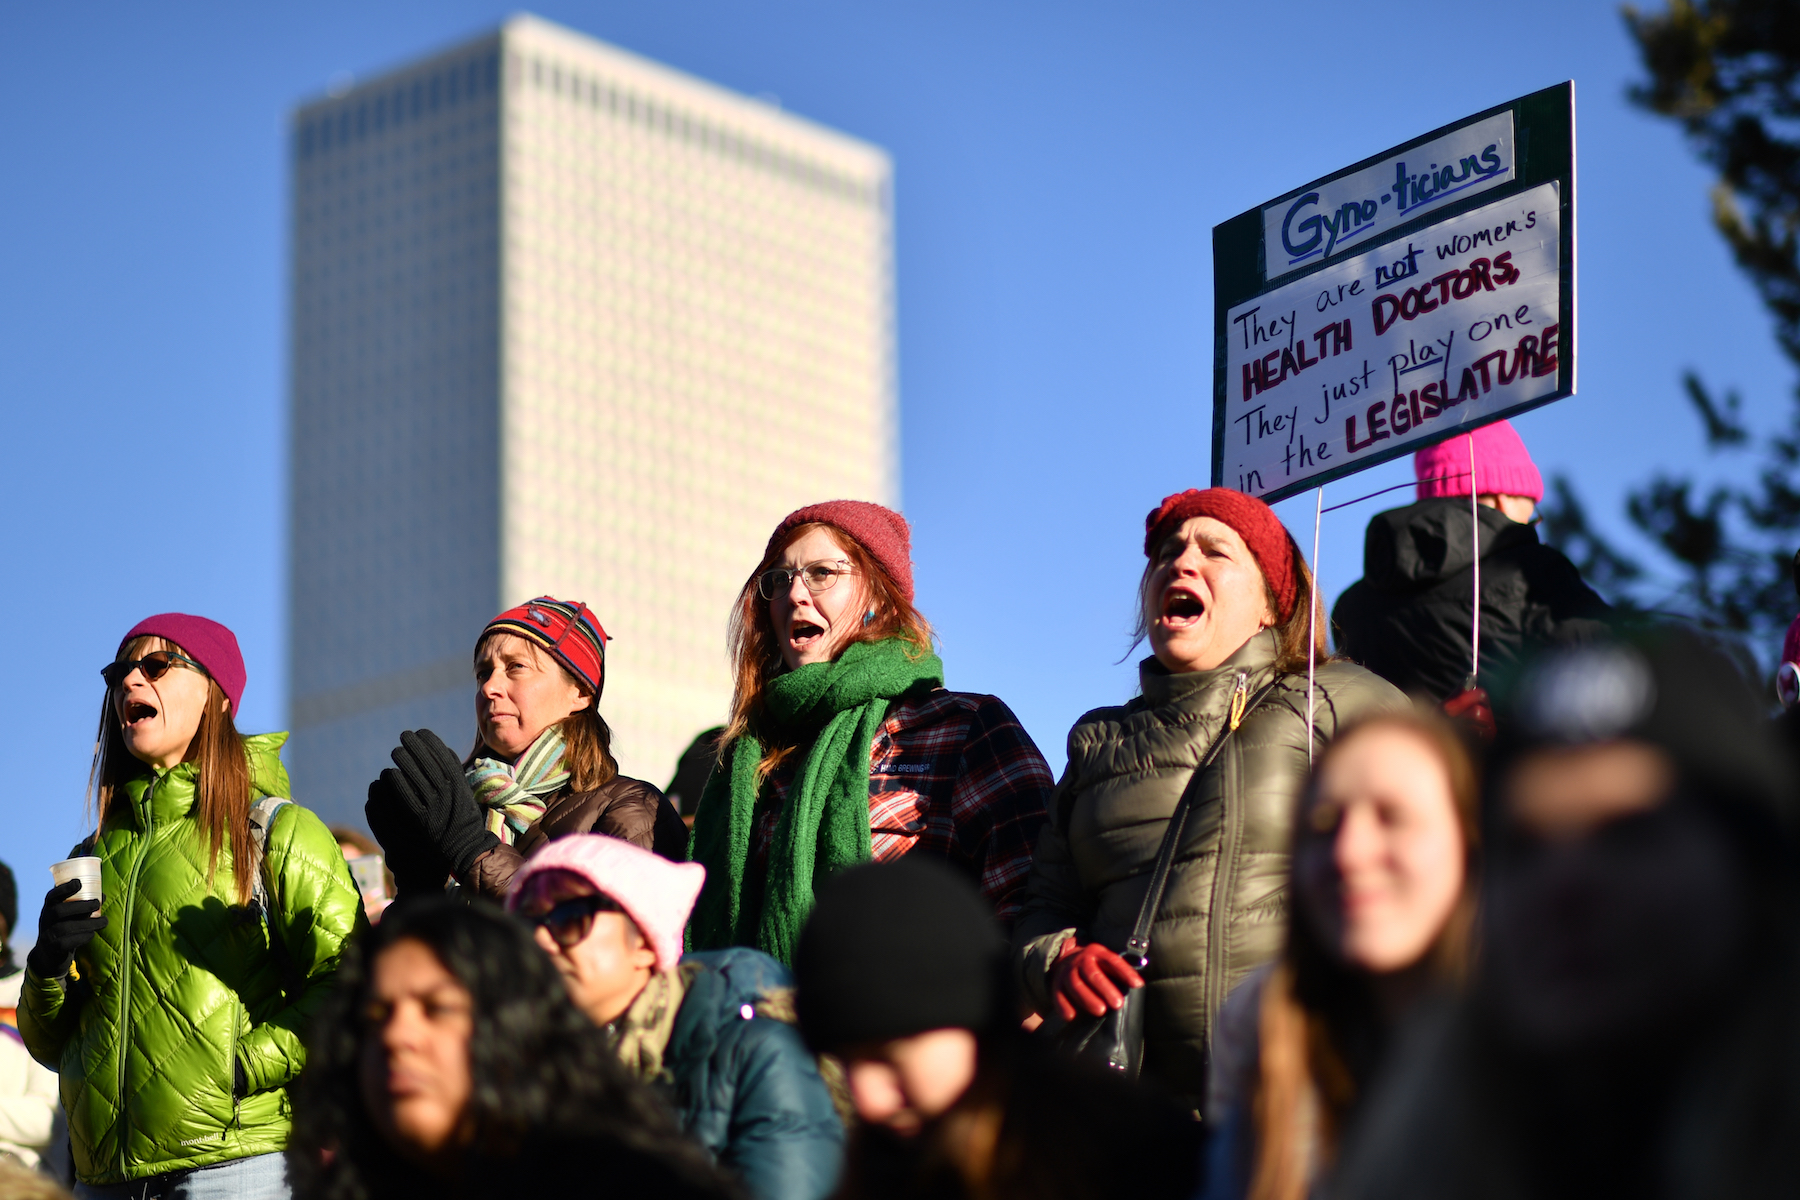 "<div class=""meta image-caption""><div class=""origin-logo origin-image kabc""><span>kabc</span></div><span class=""caption-text"">The Women'€™s March on Denver begin assembling at Civic Center Park in downtown Denver. January 19, 2019. (Hyoung Chang/Denver Post via Getty Images)</span></div>"